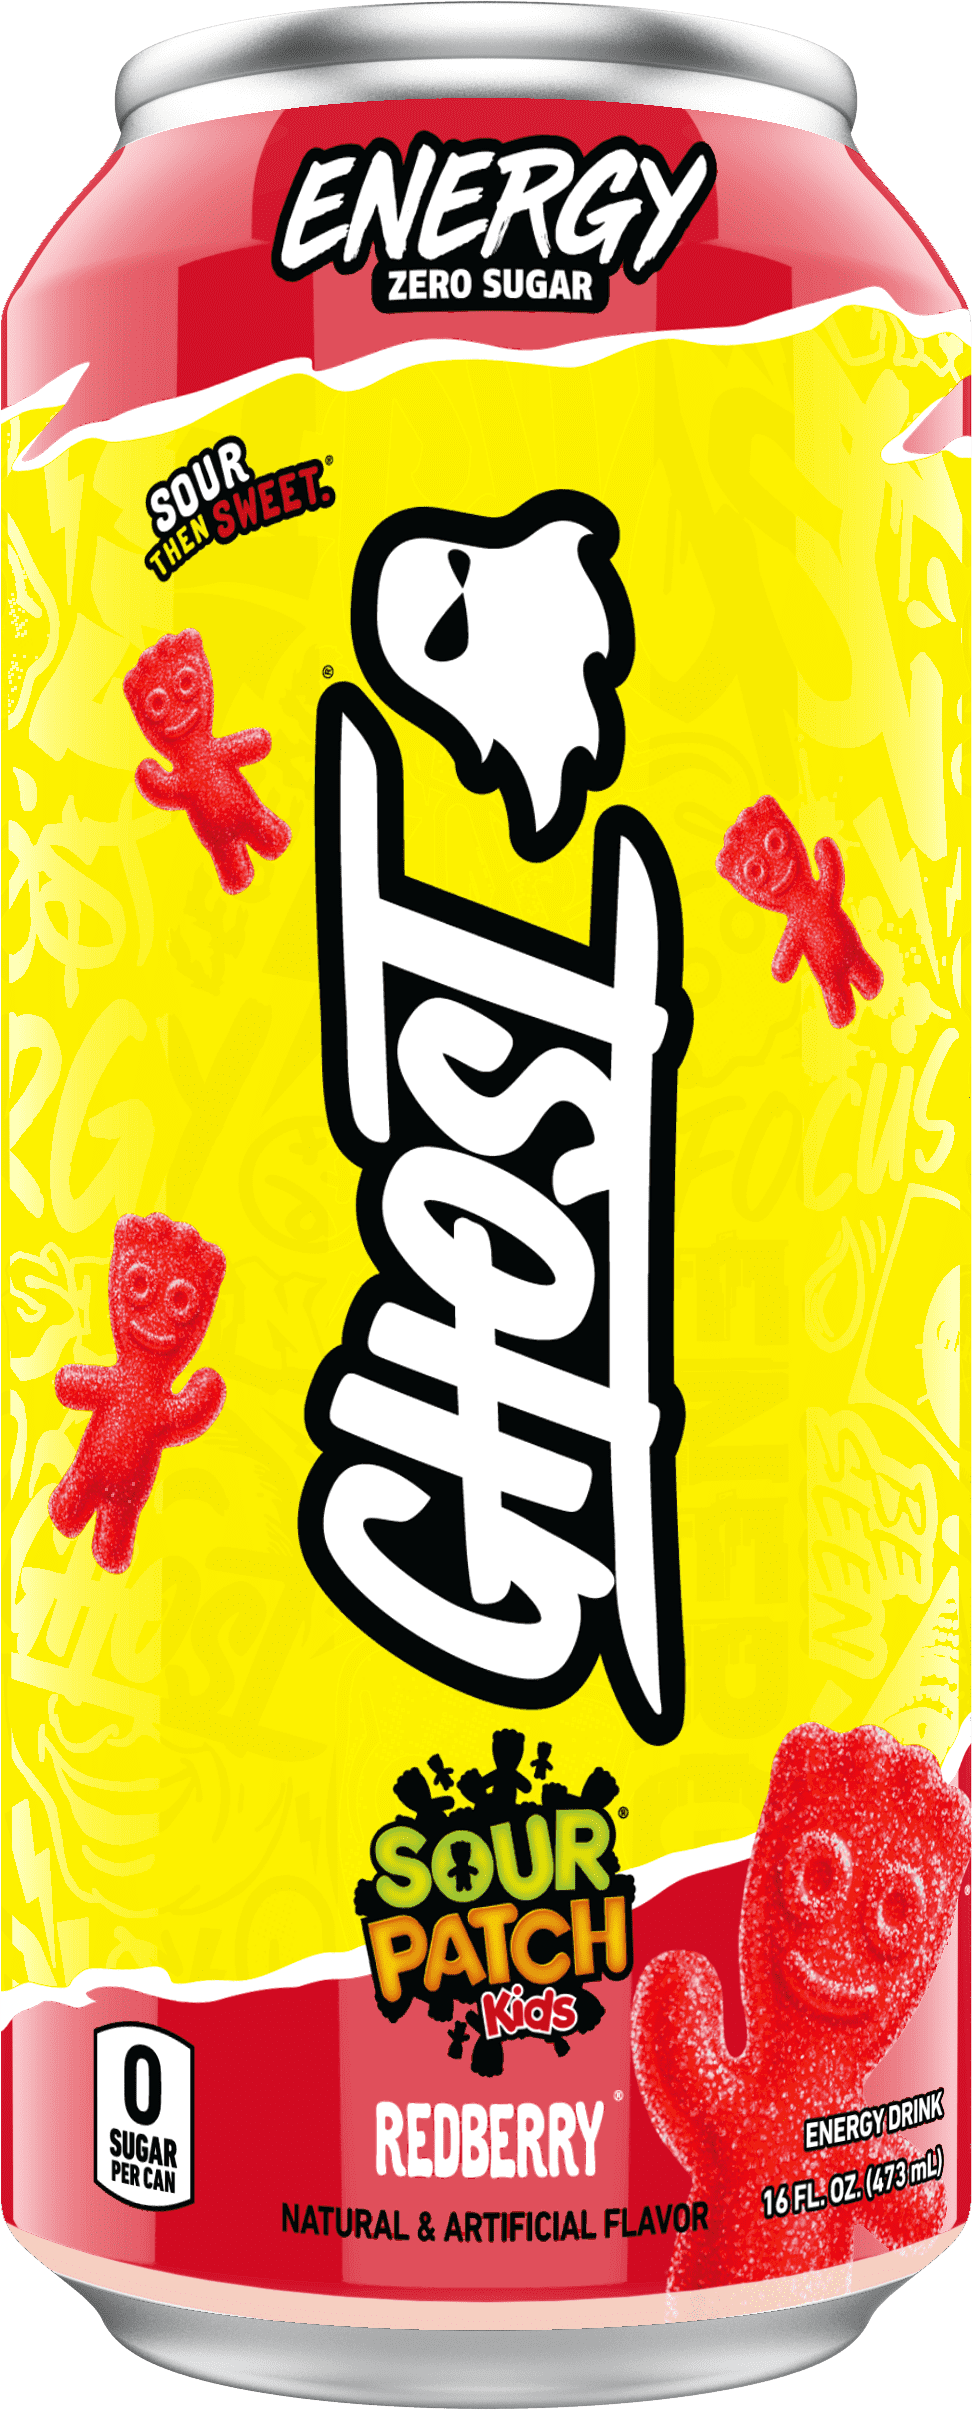 ghost energy sour patch kids redberry